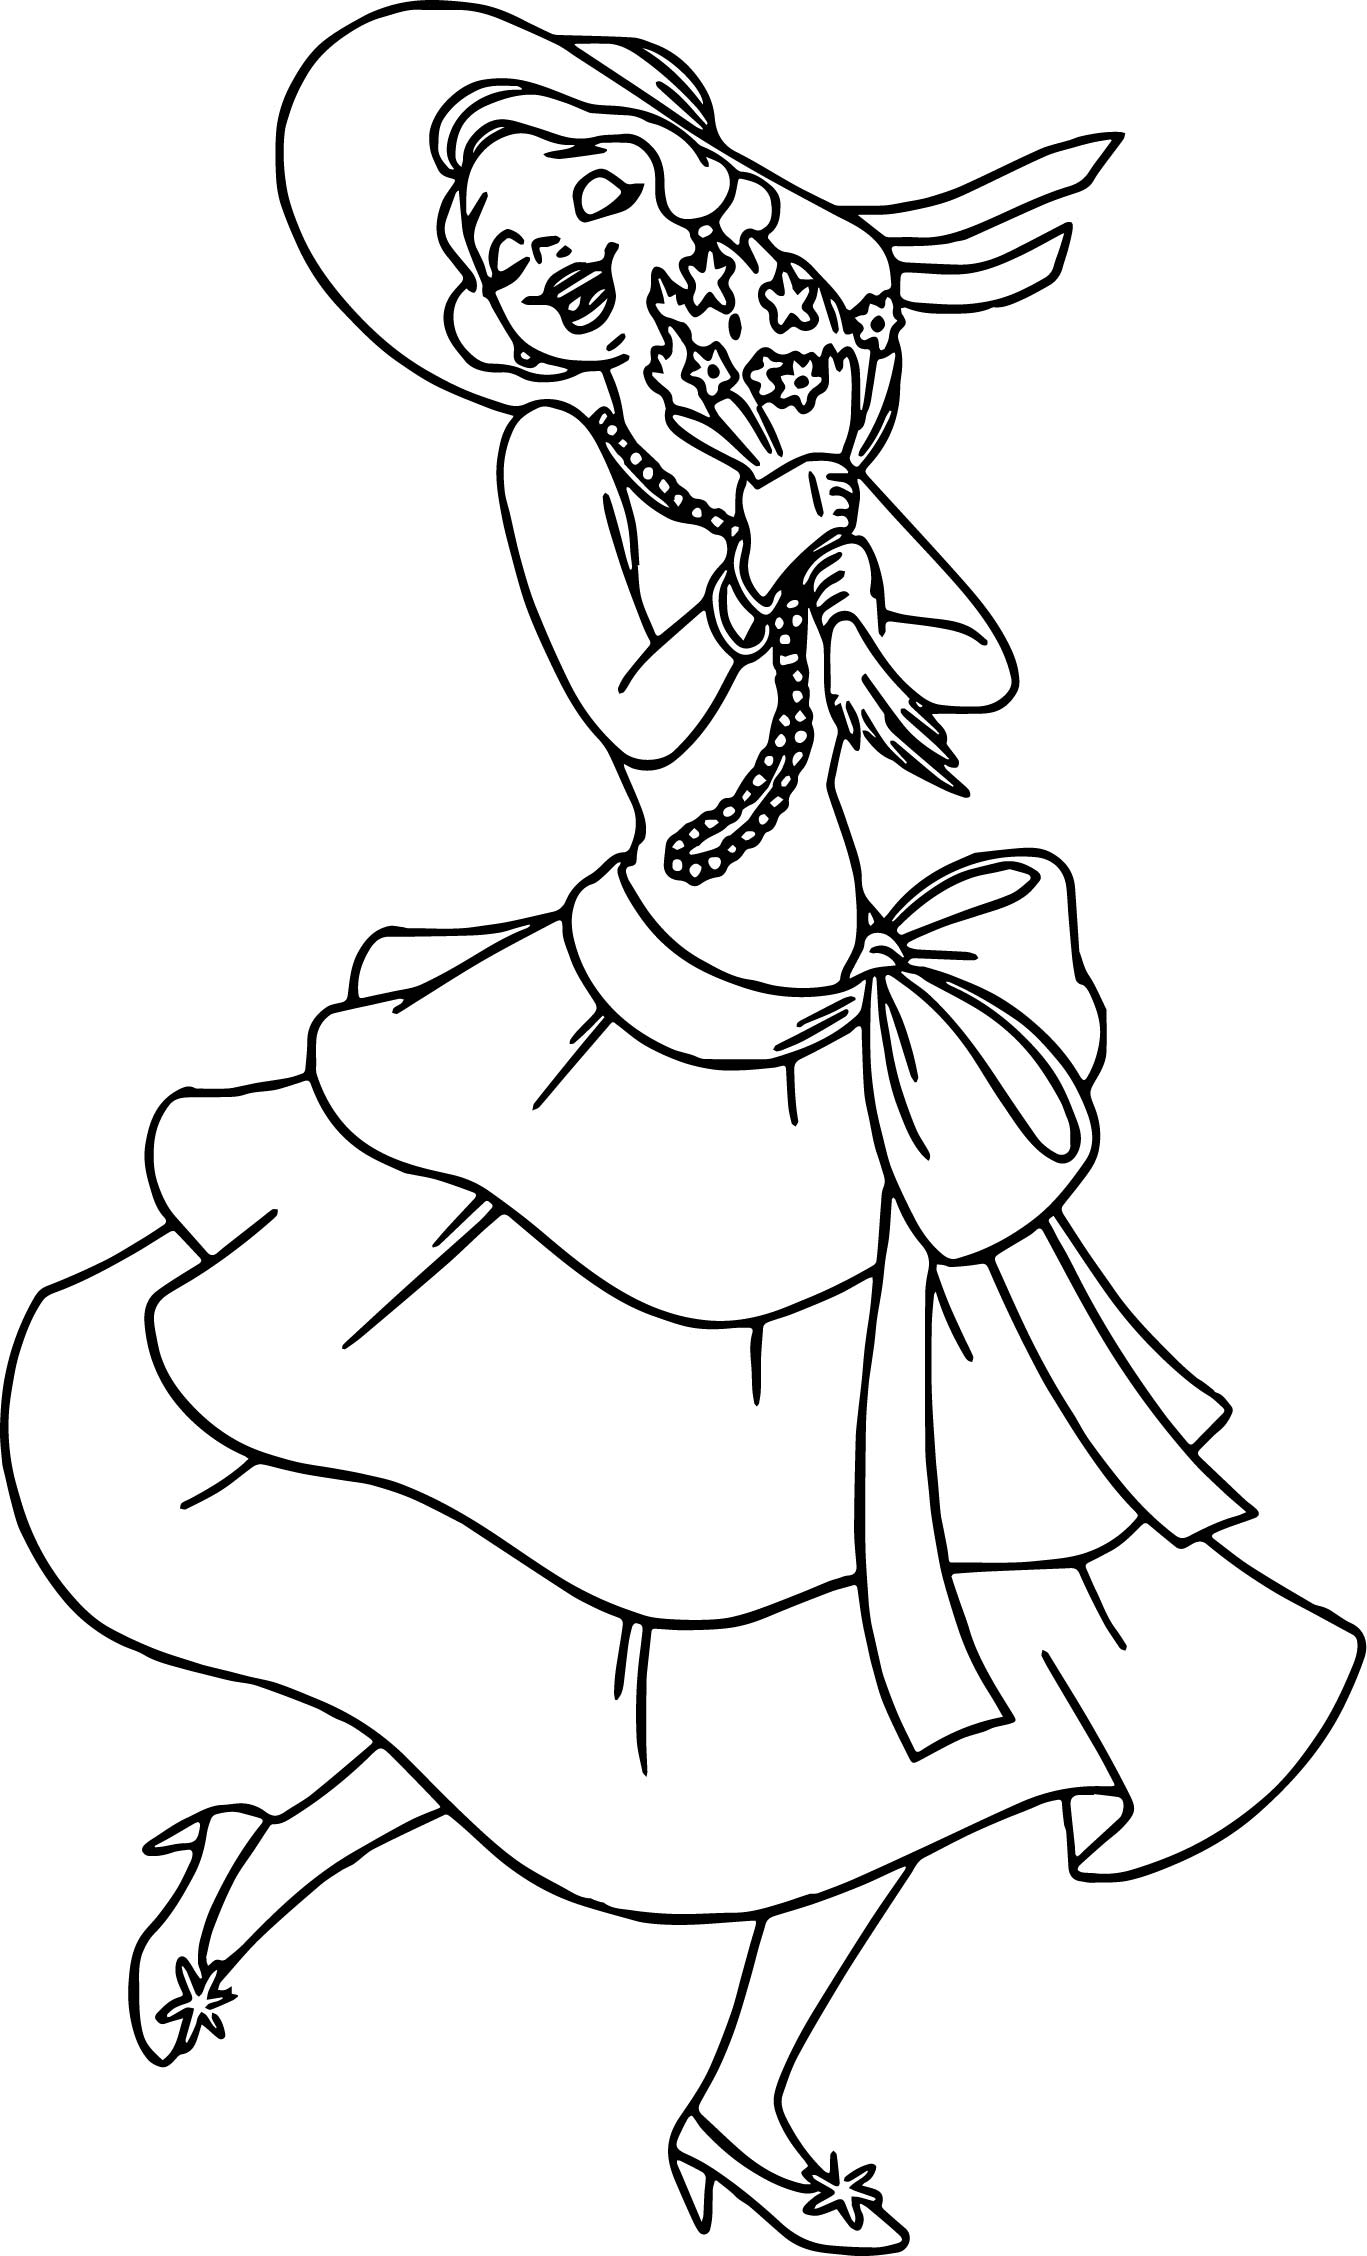 The Princess And The Frog Very Flower Coloring Page